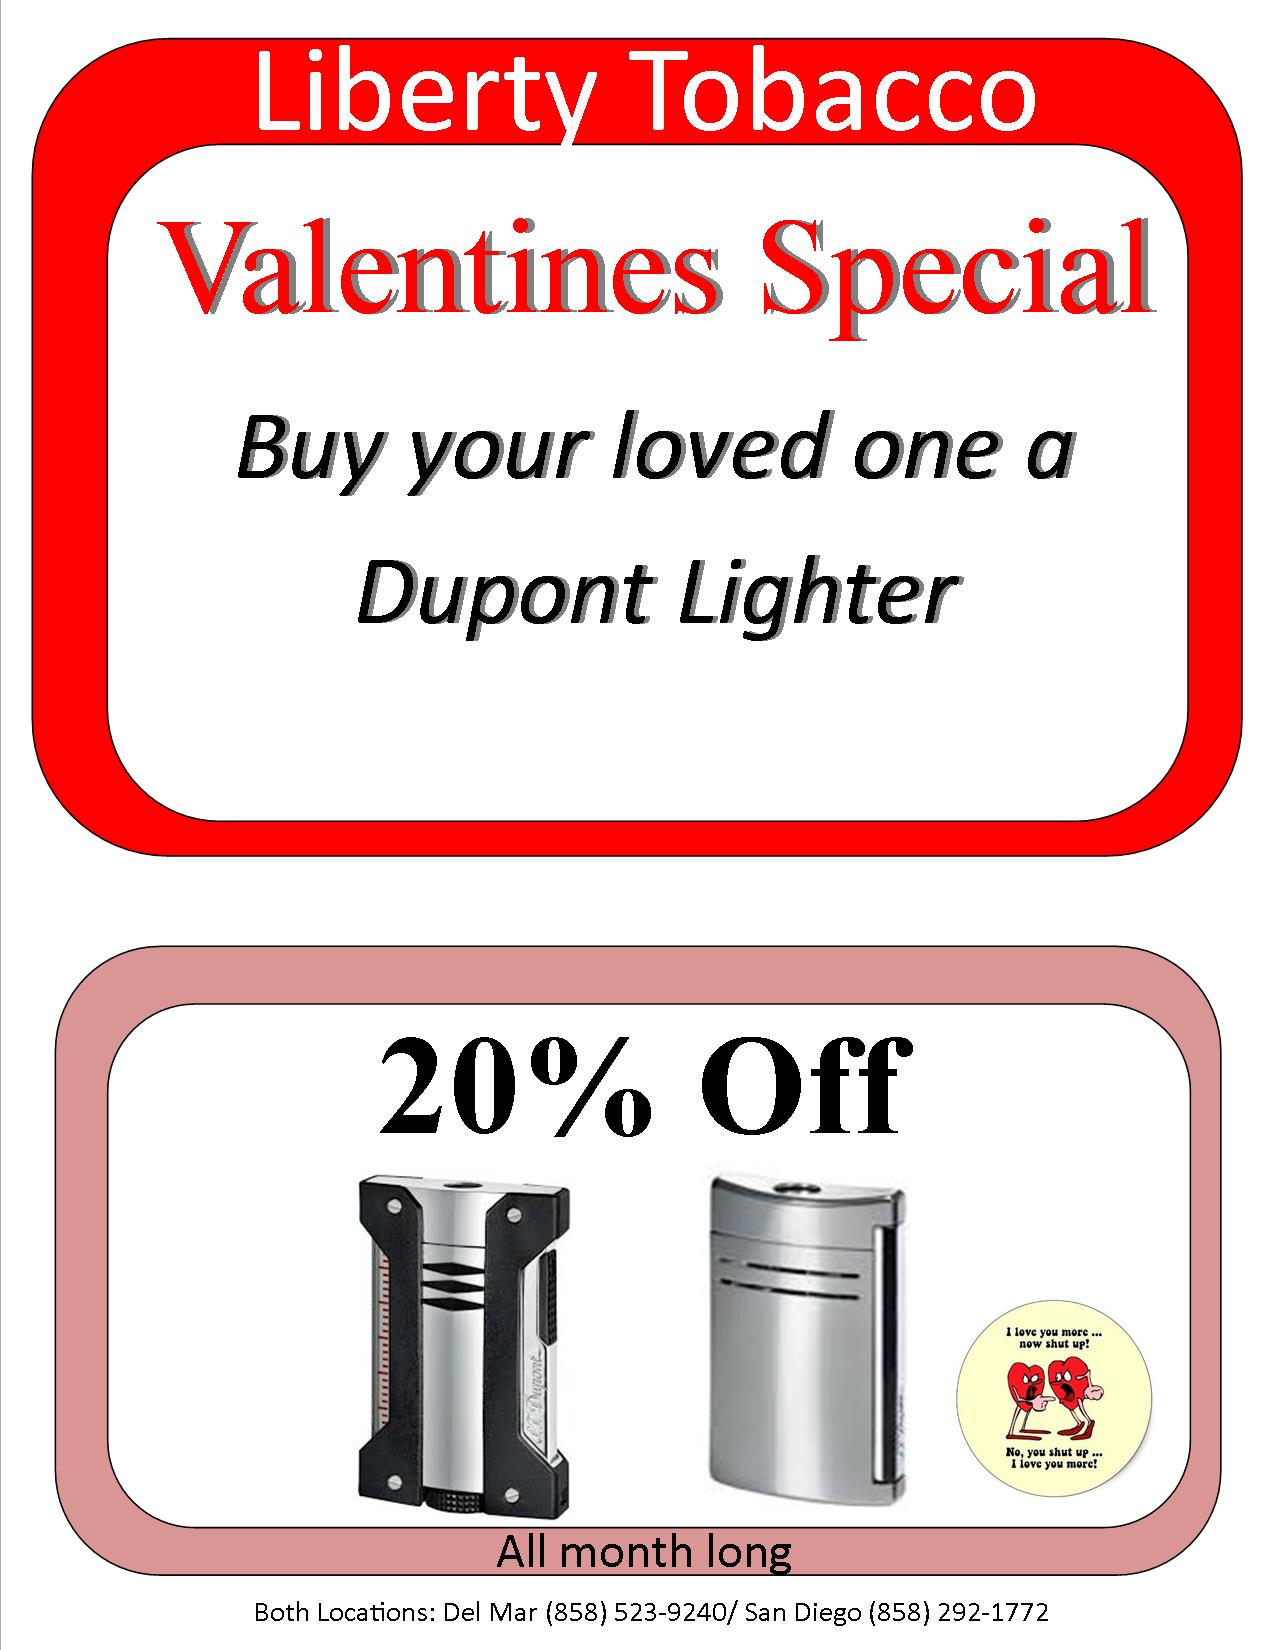 Dupont Lighter 20% Off the month of Feb.